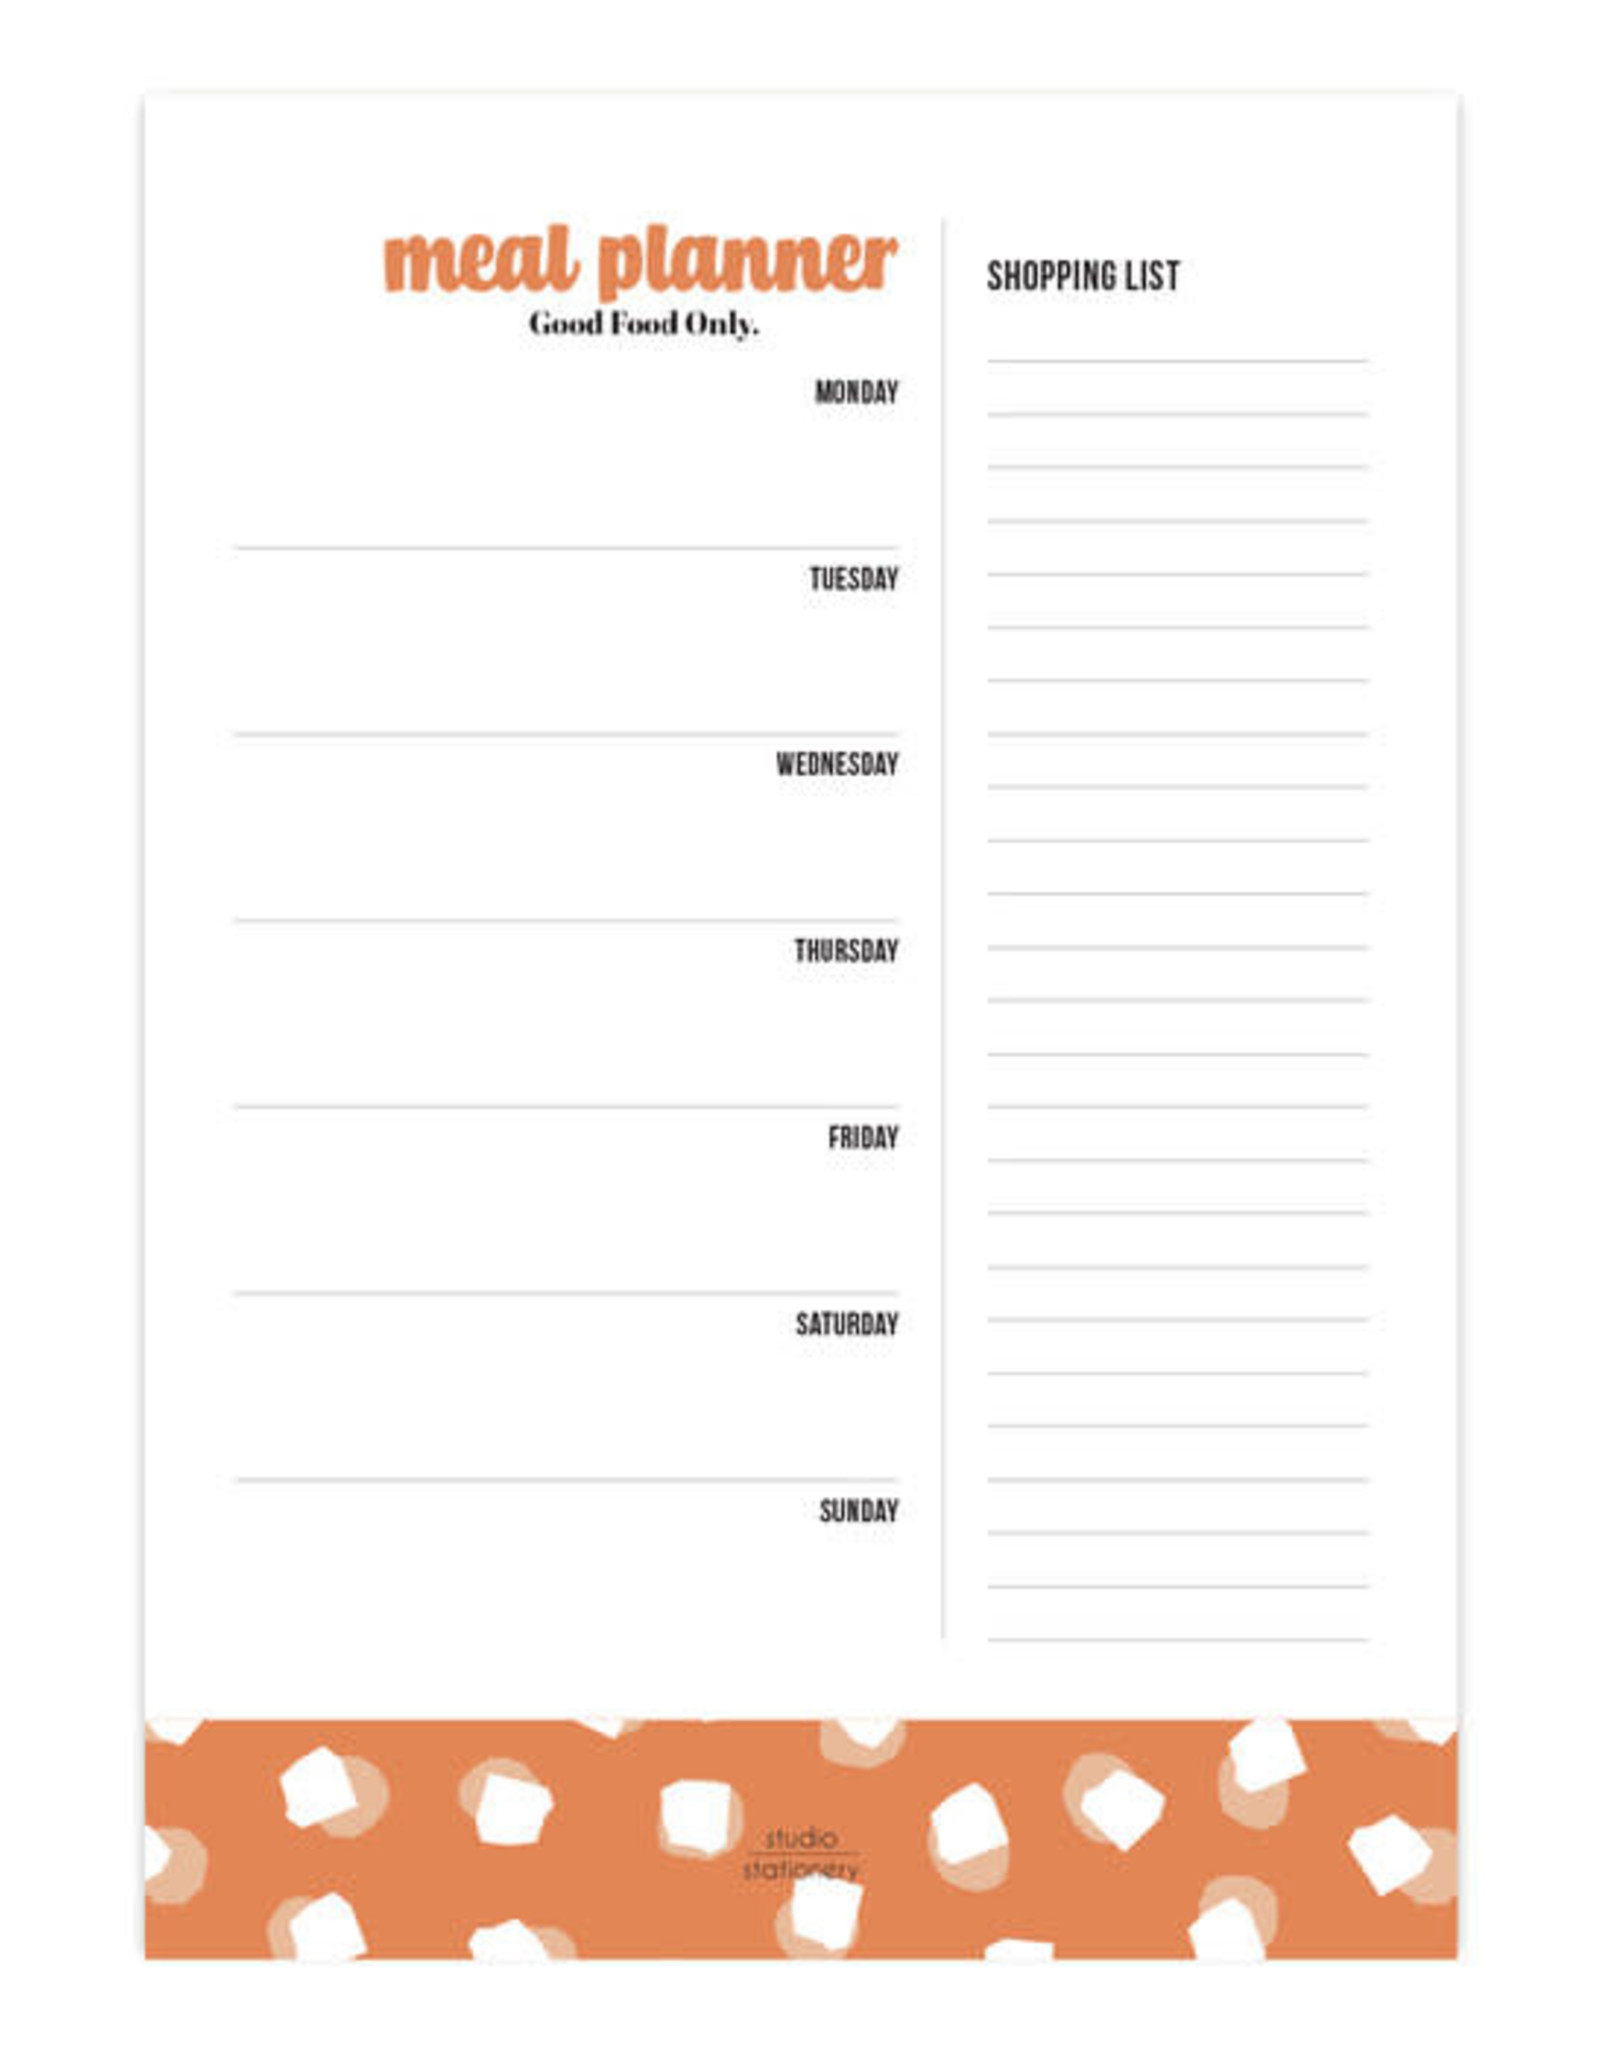 studio stationery Studio stationery A5 Noteblock Mealplanner Good Food Only